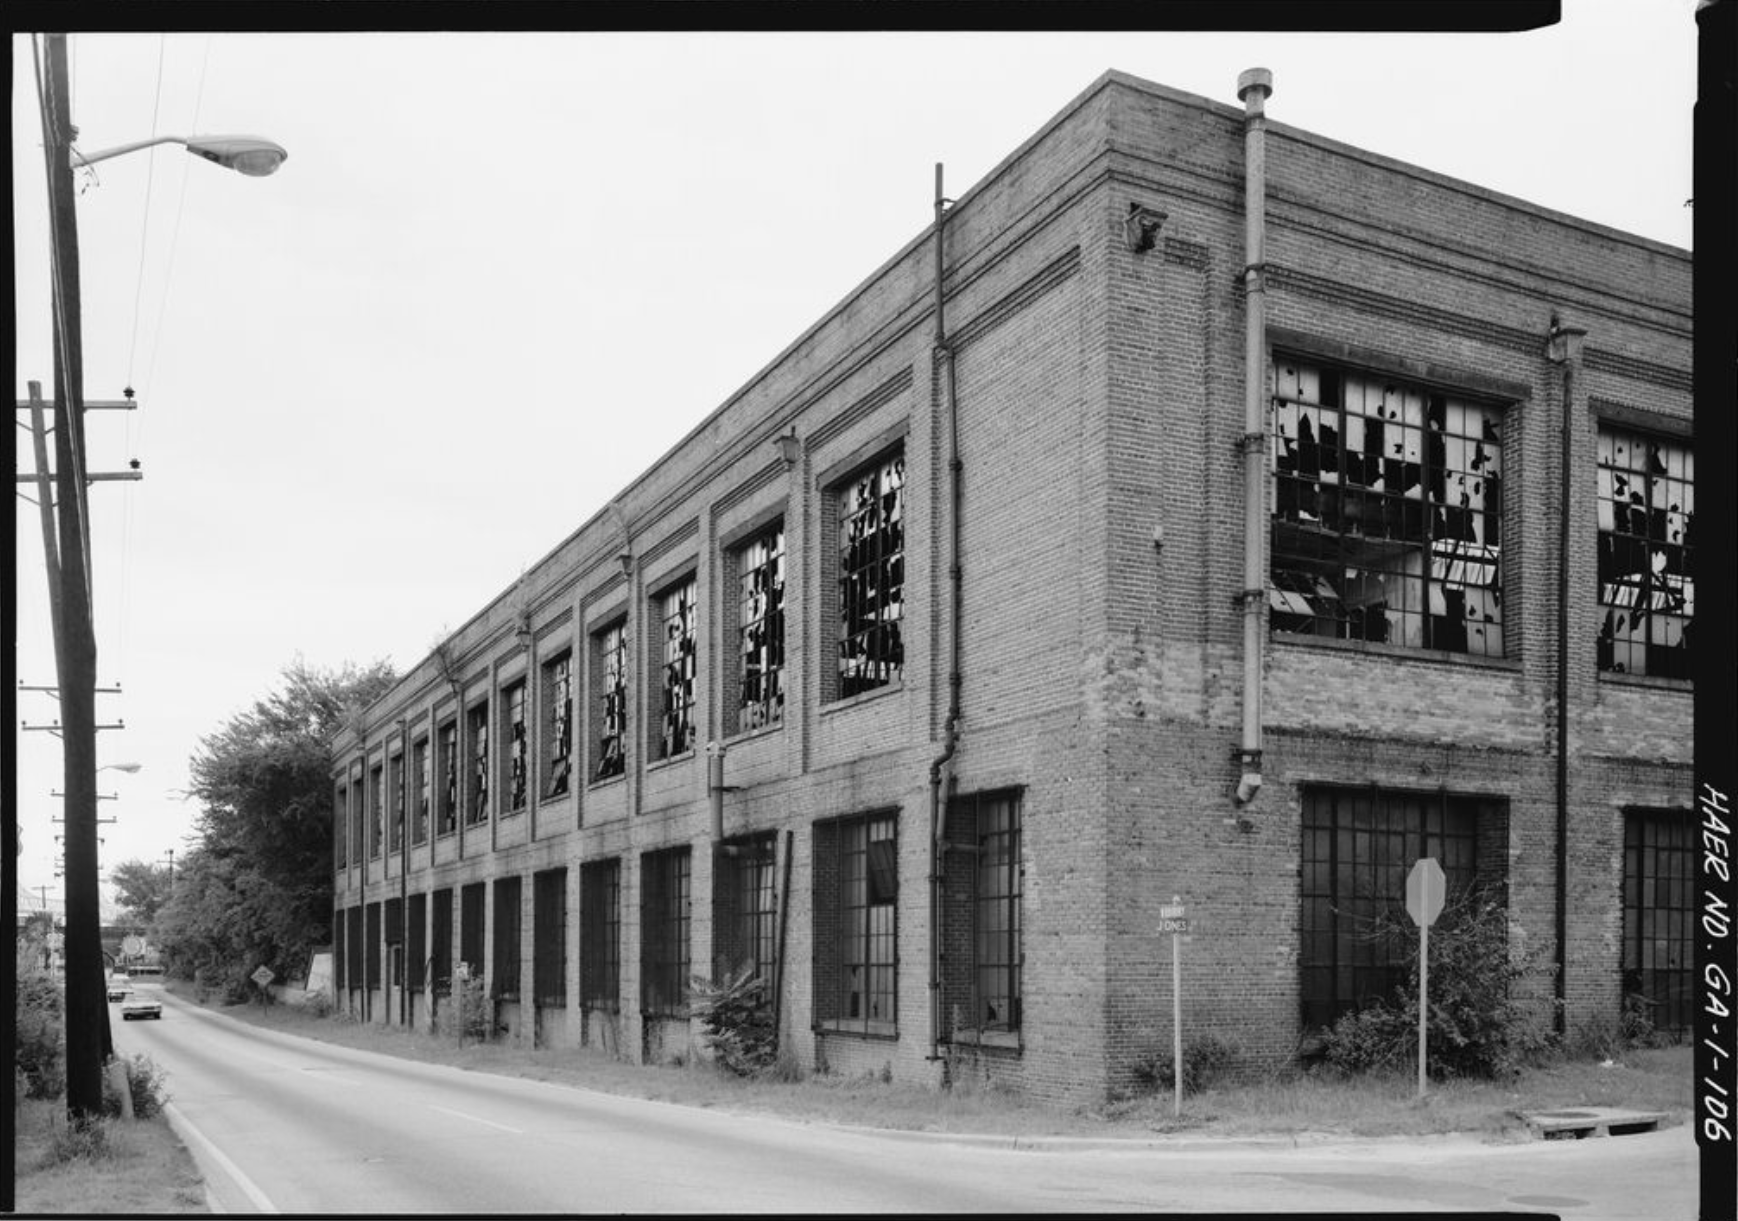 Exterior photograph of the Central of Georgia Railway building.